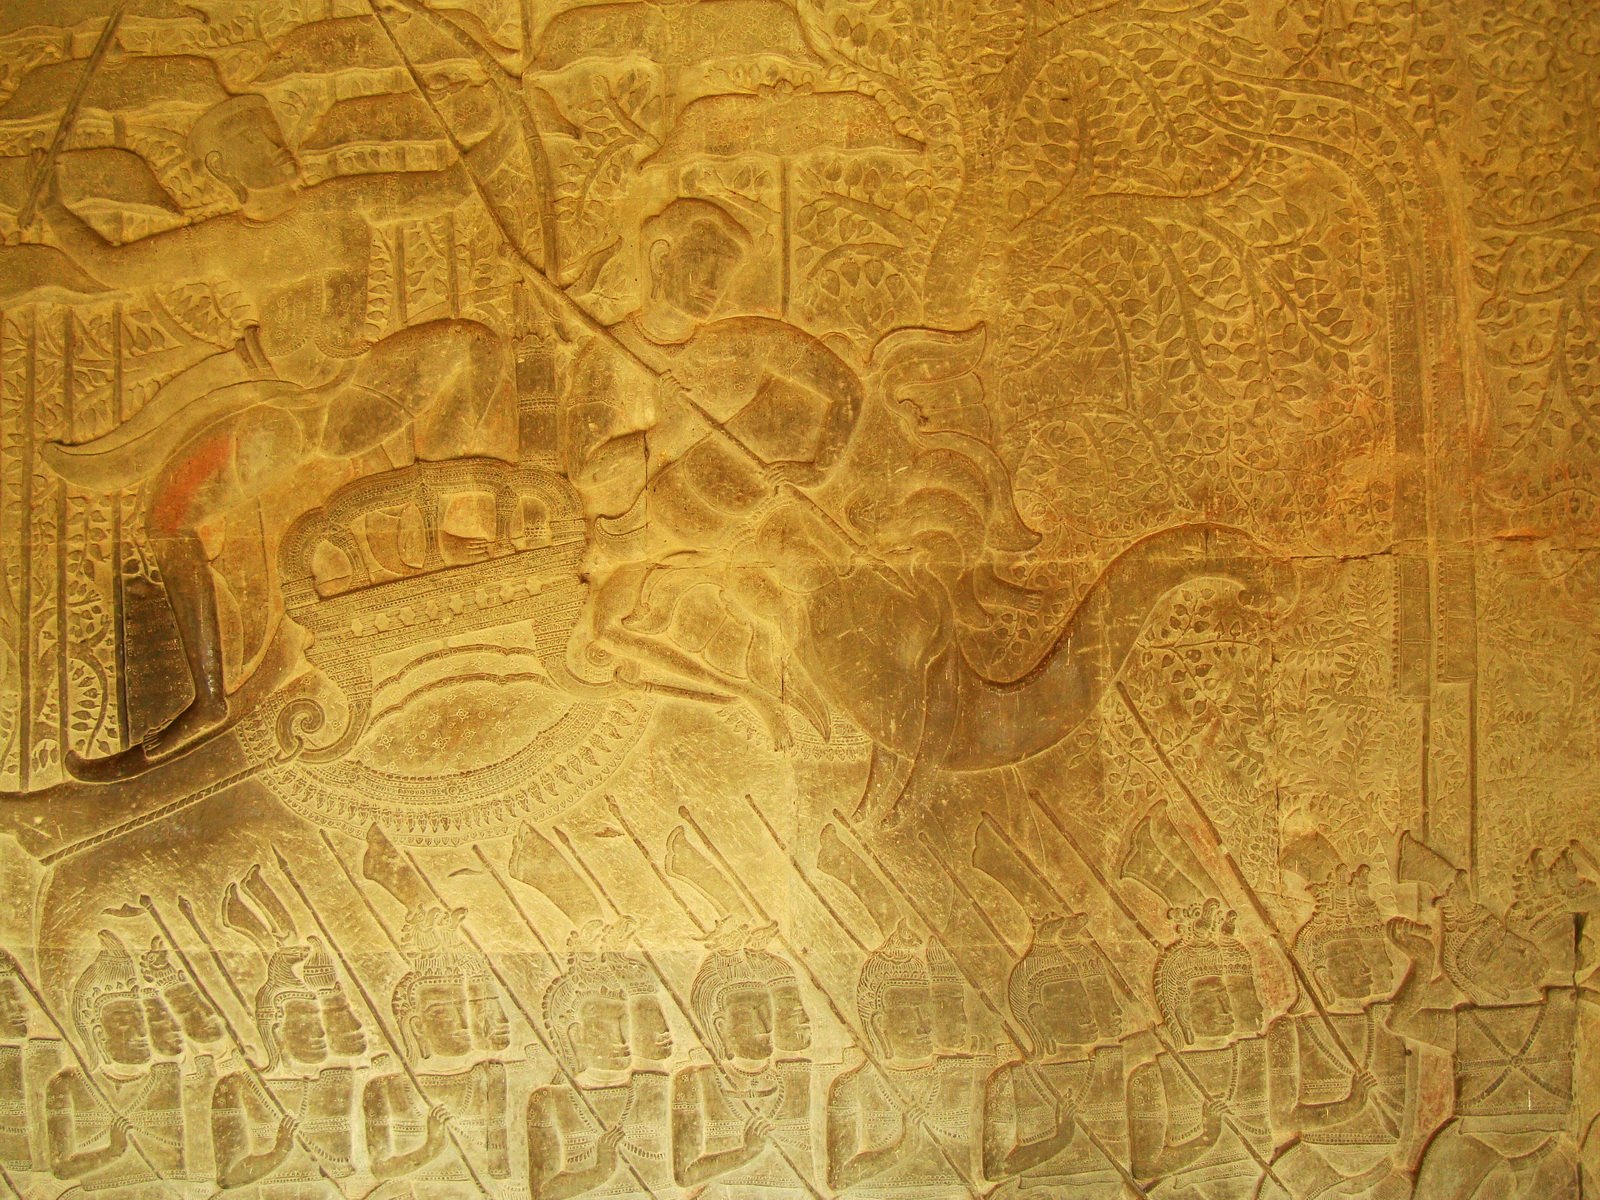 Angkor Wat Bas relief S Gallery W Wing Historic Procession 052